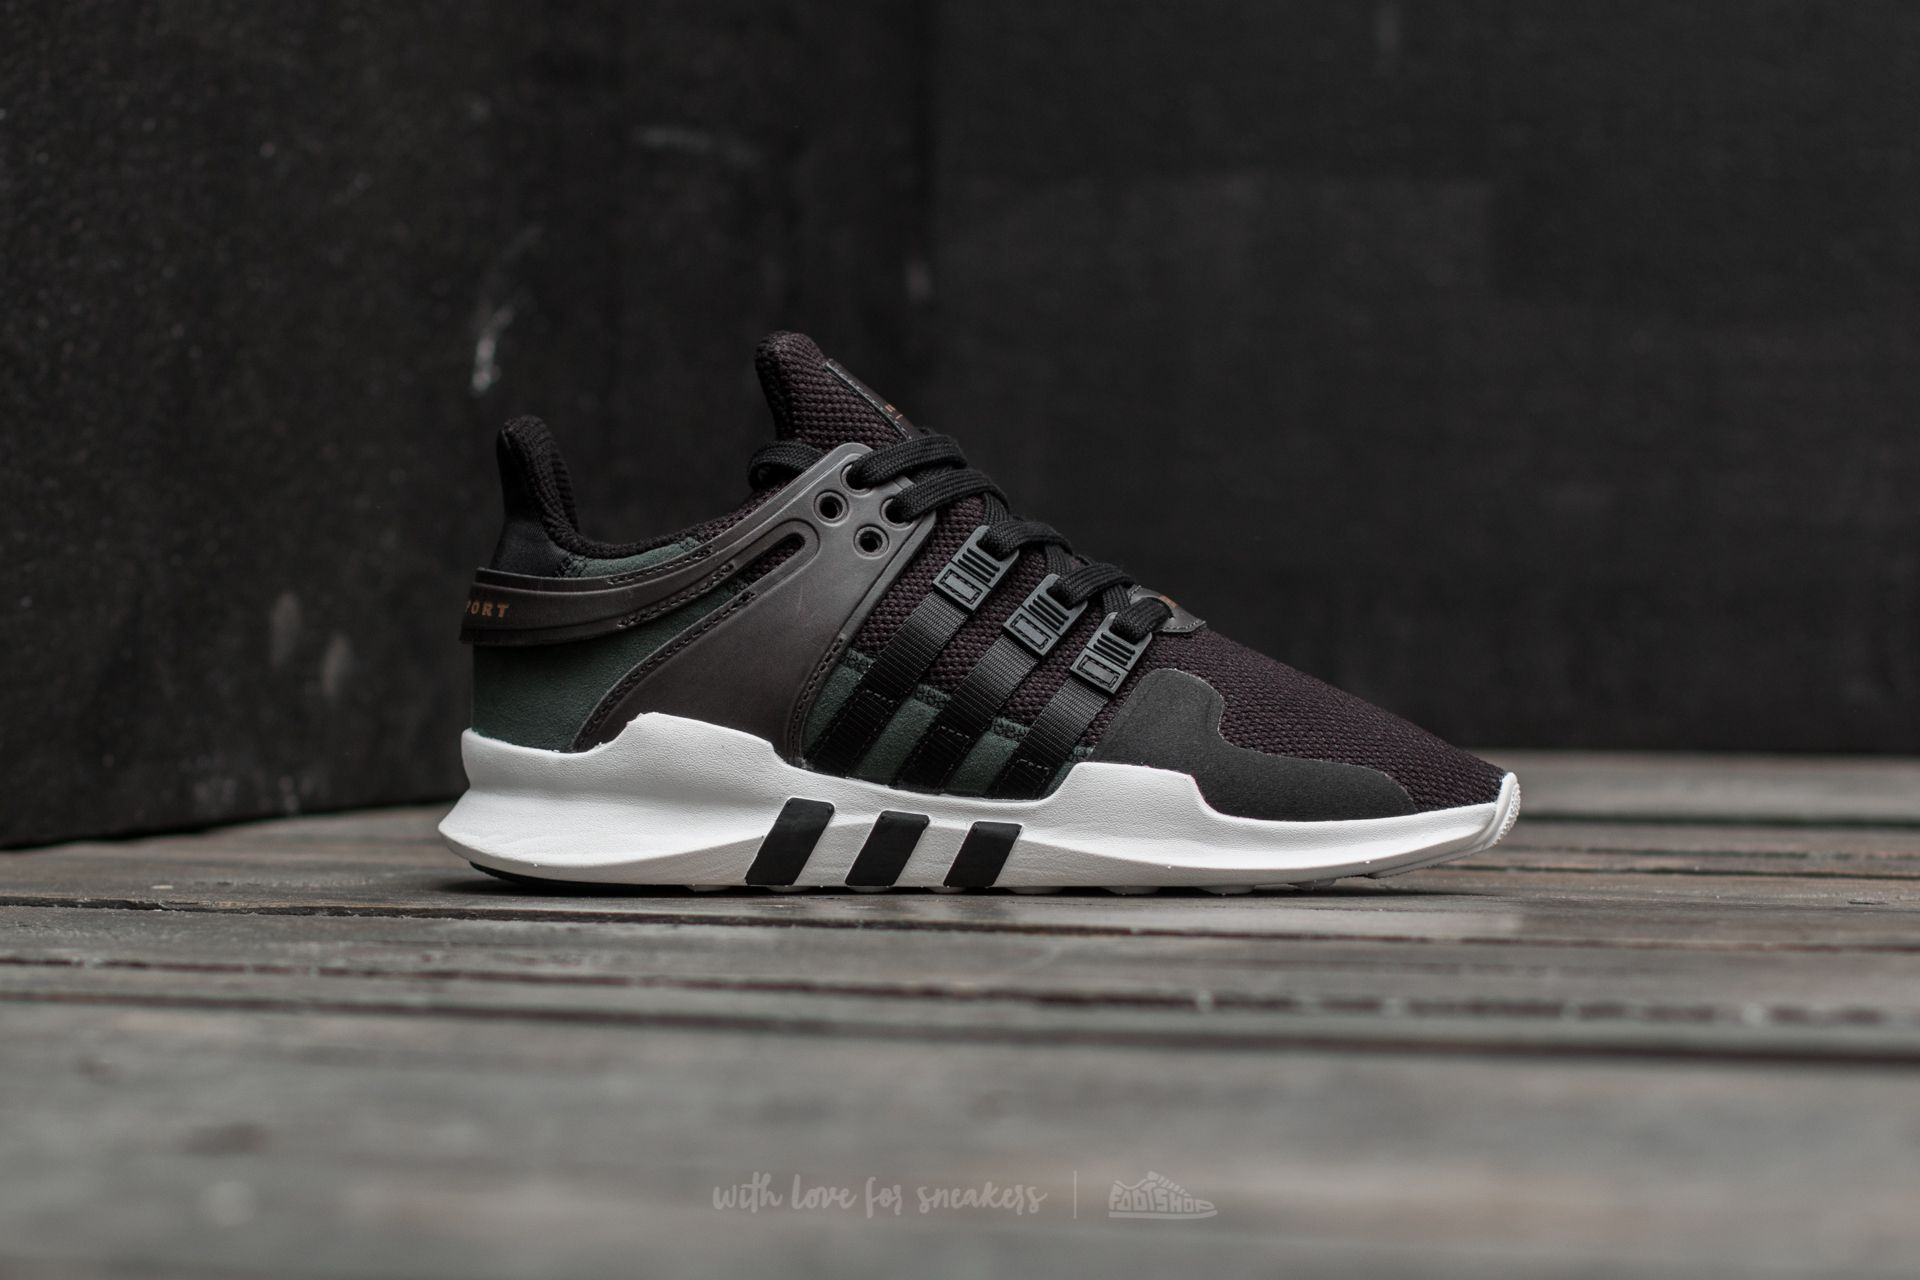 details for new release official images adidas EQT Support ADV Core Black/ Core Black/ Ftw White ...